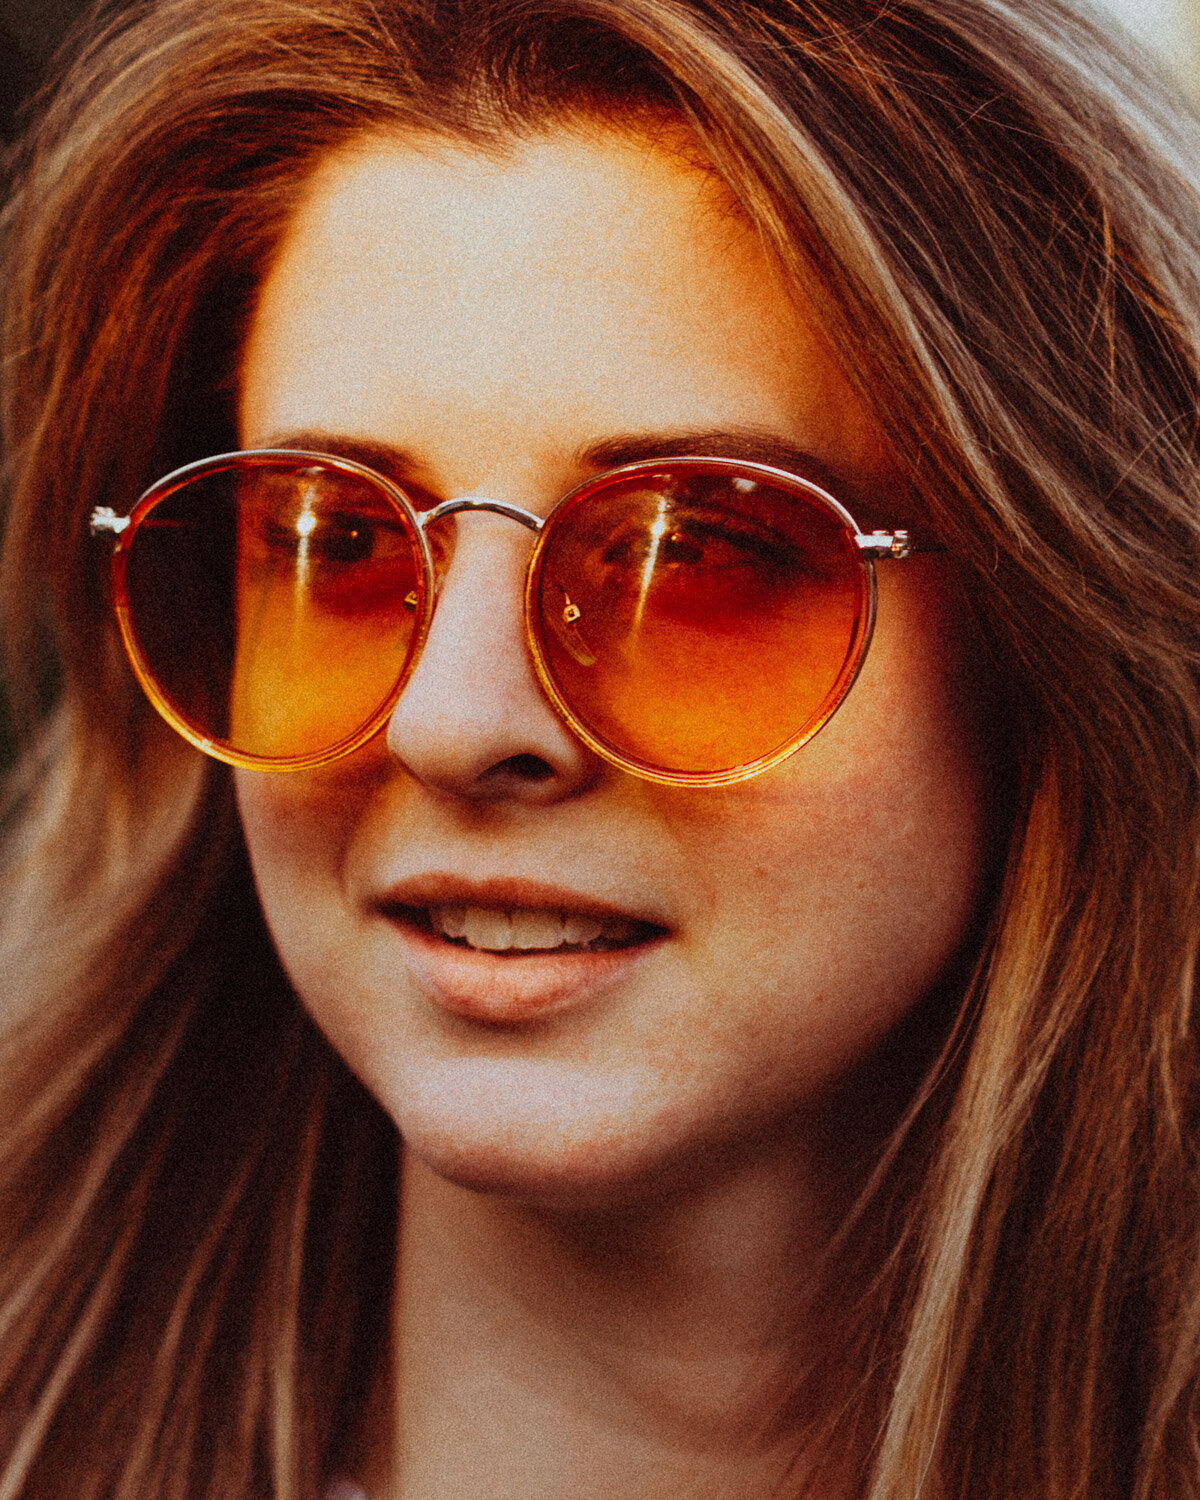 nashville-portrait-photographer-sunset-golden-sunglasses-orange